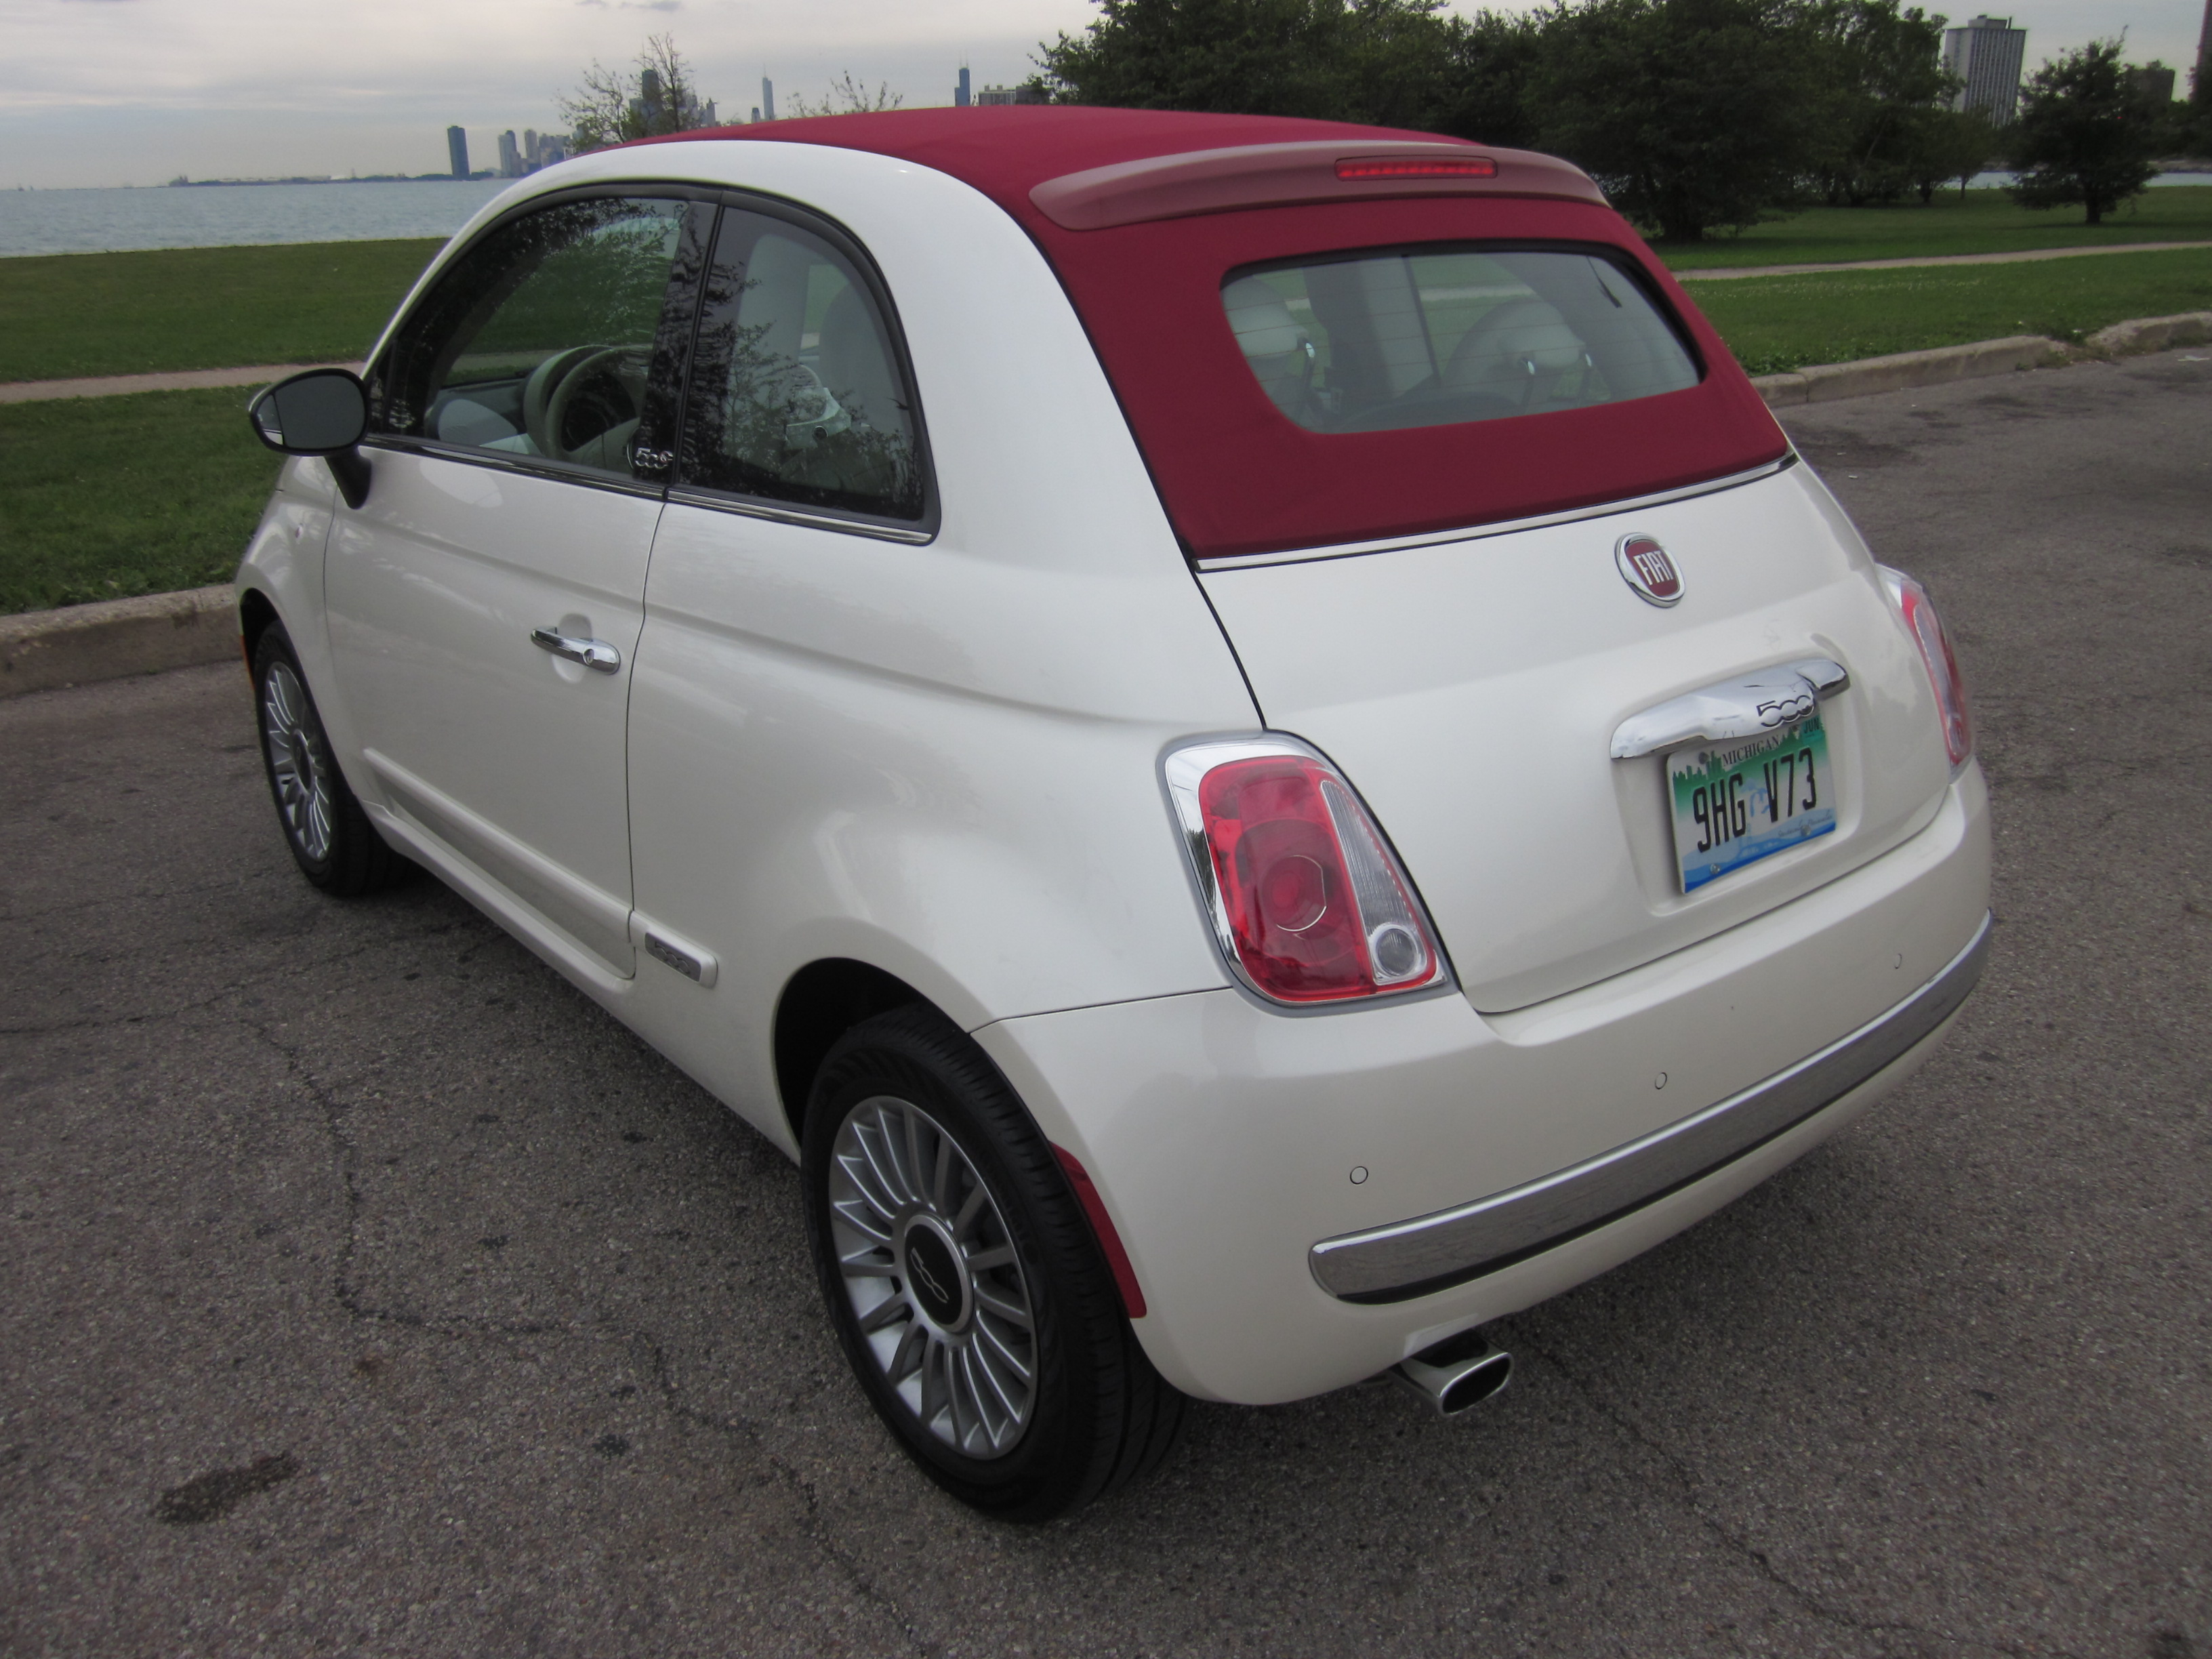 2012 fiat 500c drive and review by larry nutson video. Black Bedroom Furniture Sets. Home Design Ideas